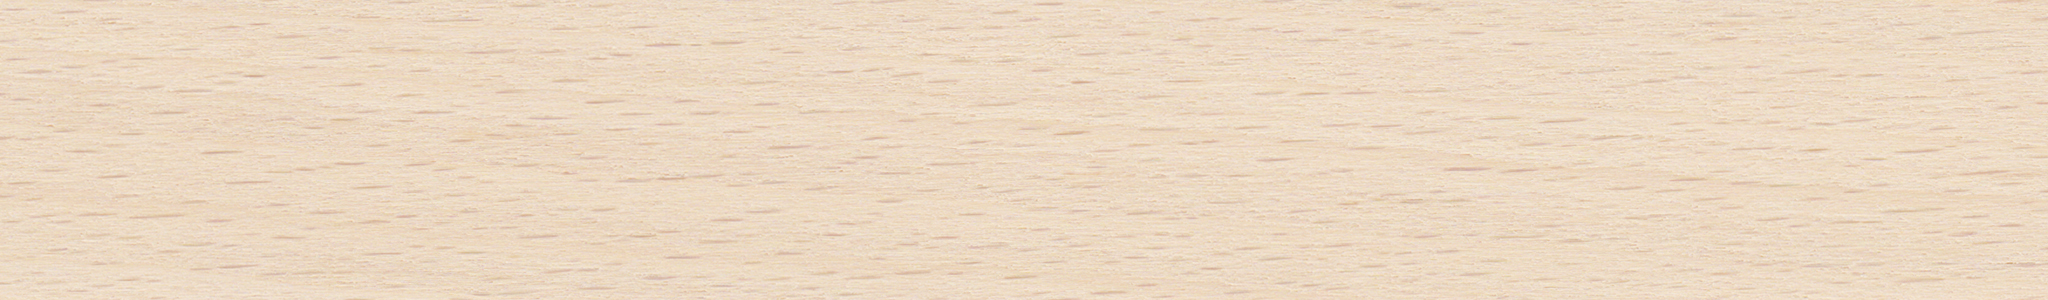 HD 71010 Veneer Edge Beech Fleece